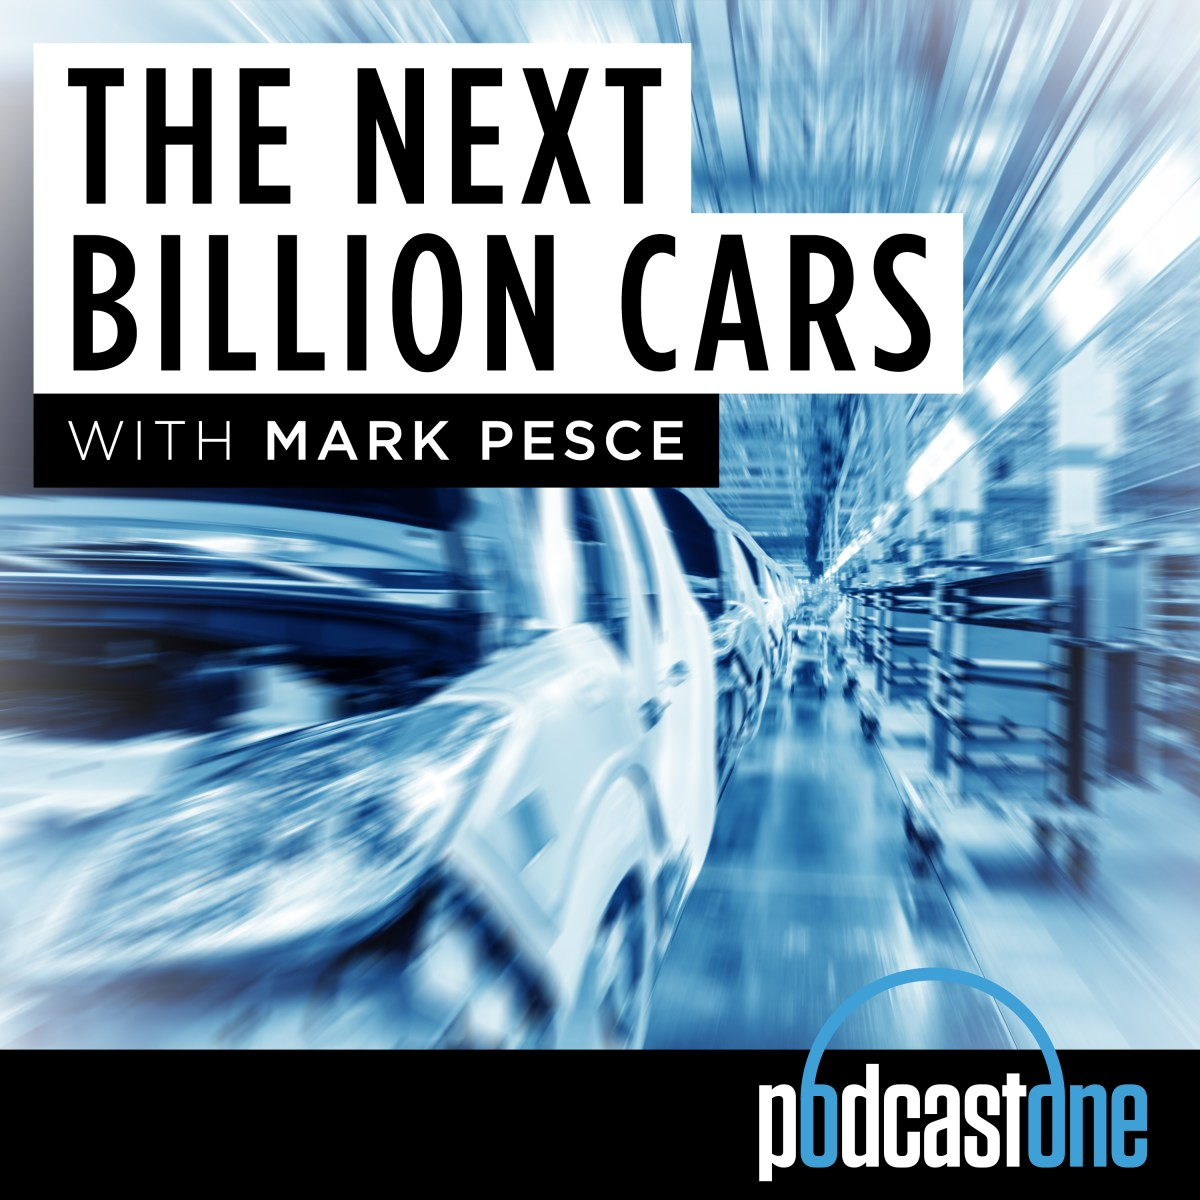 THE NEXT BILLION CARS Episode 10 – The Next Billion Challenges